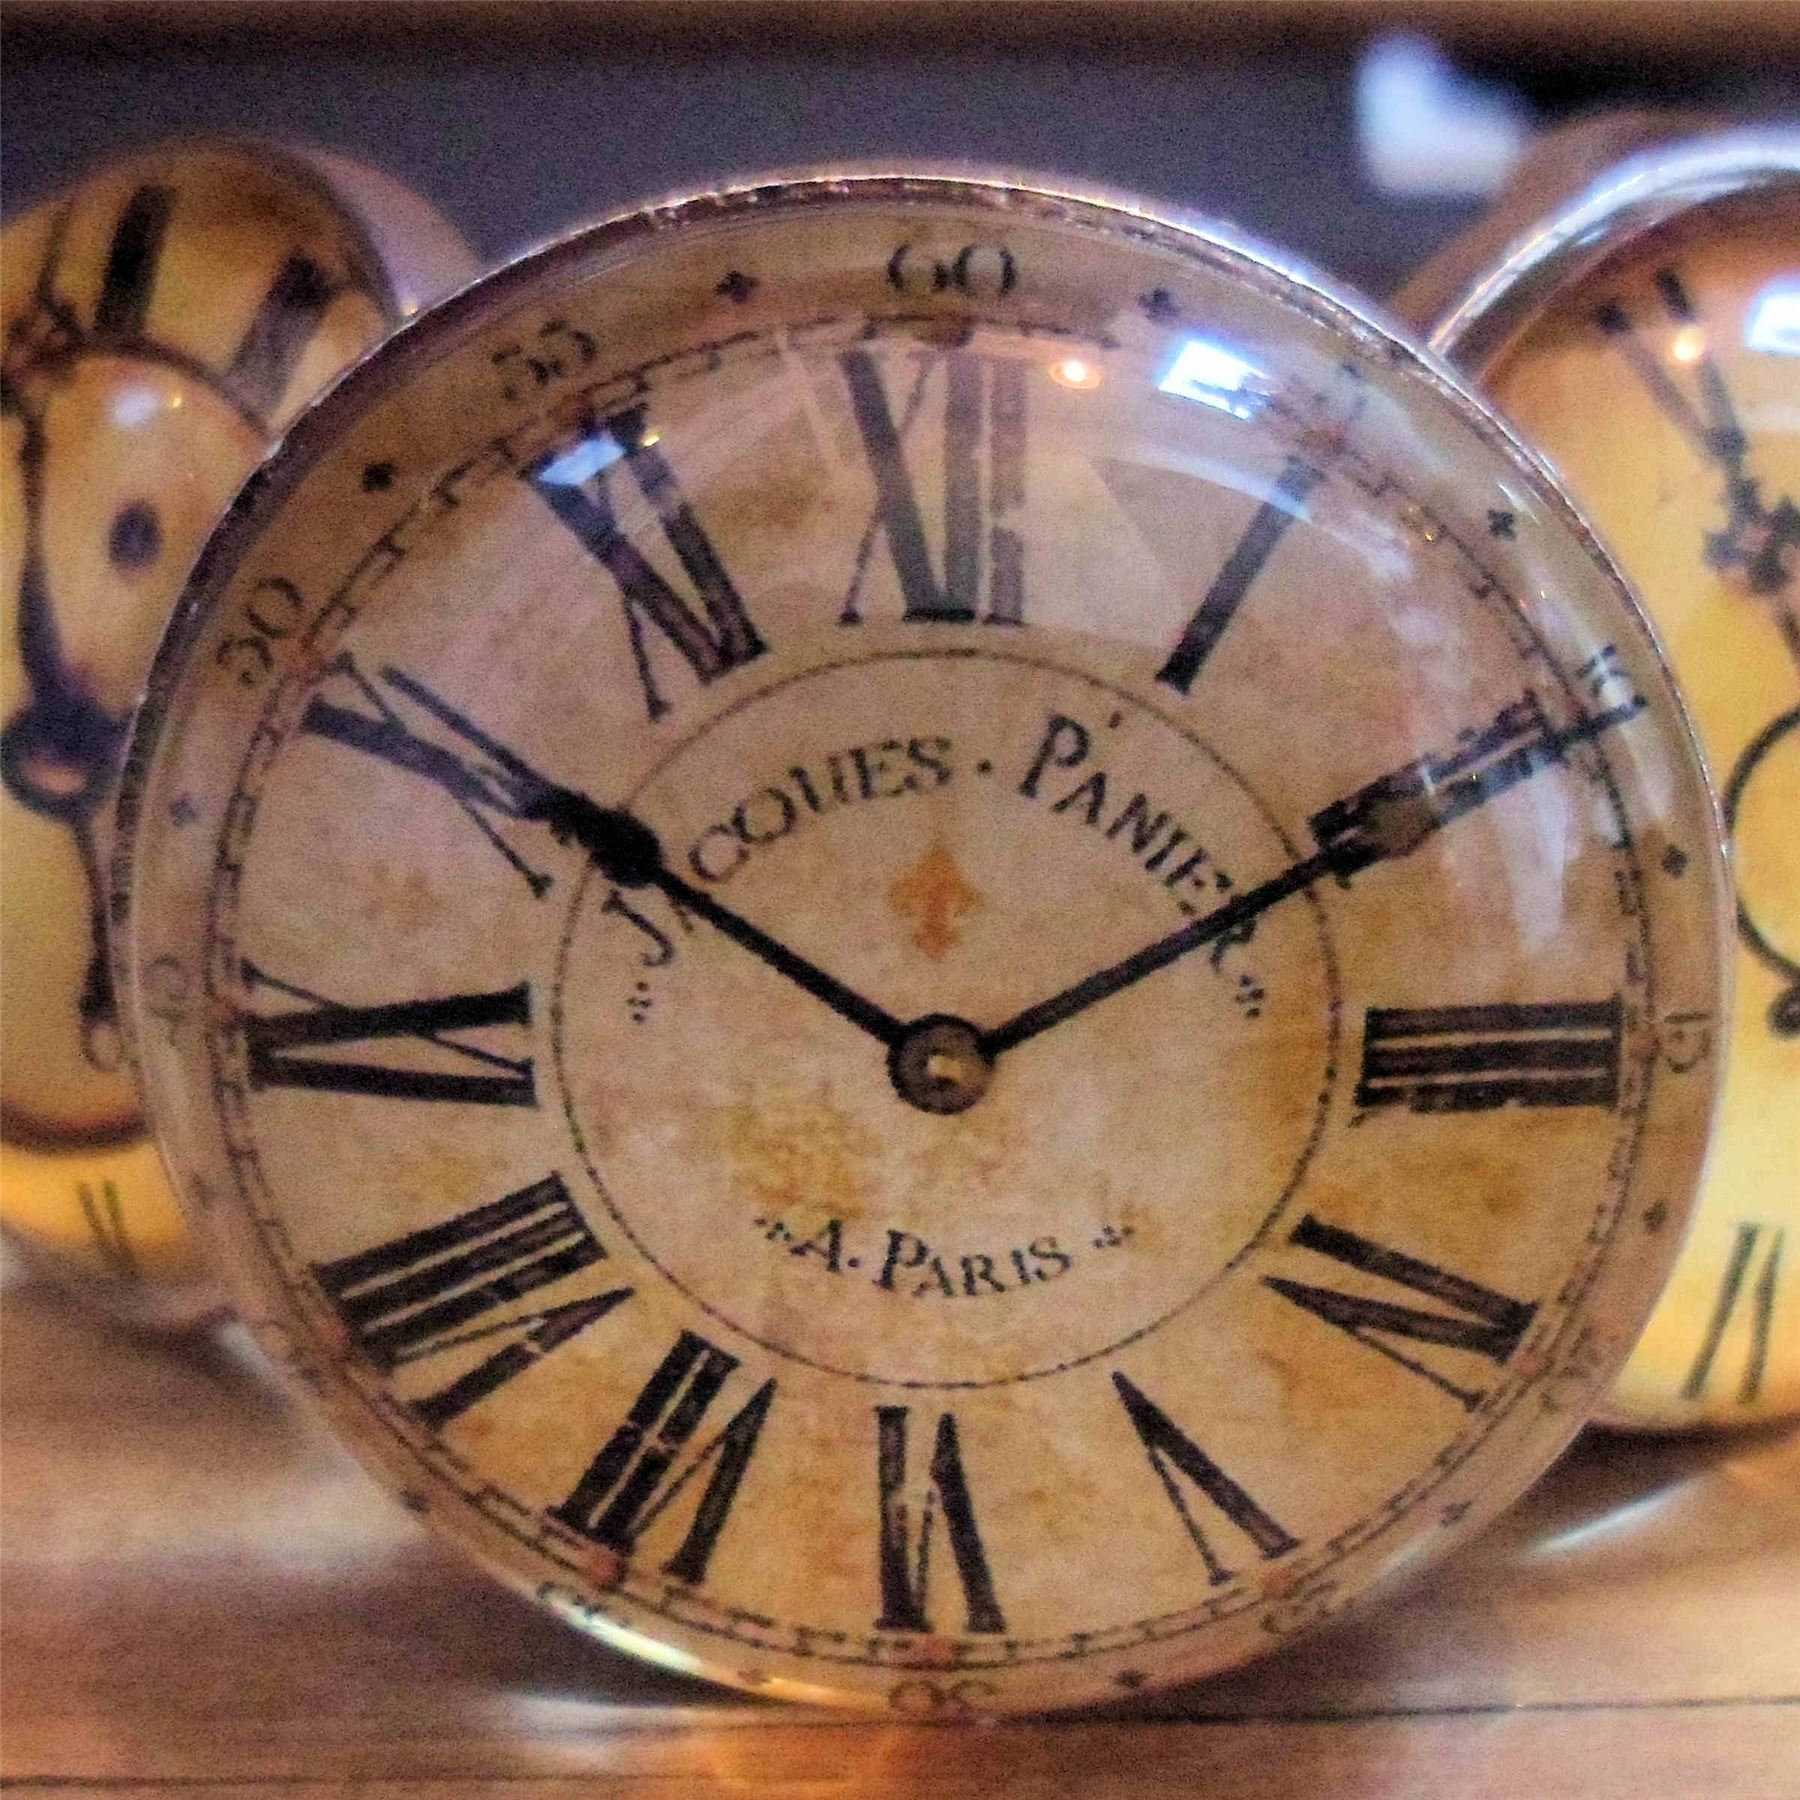 Vintage-Glass-Clock-face-DOOR-KNOBS-HANDLES-Shabby-Furniture-chic-Drawer-pulls